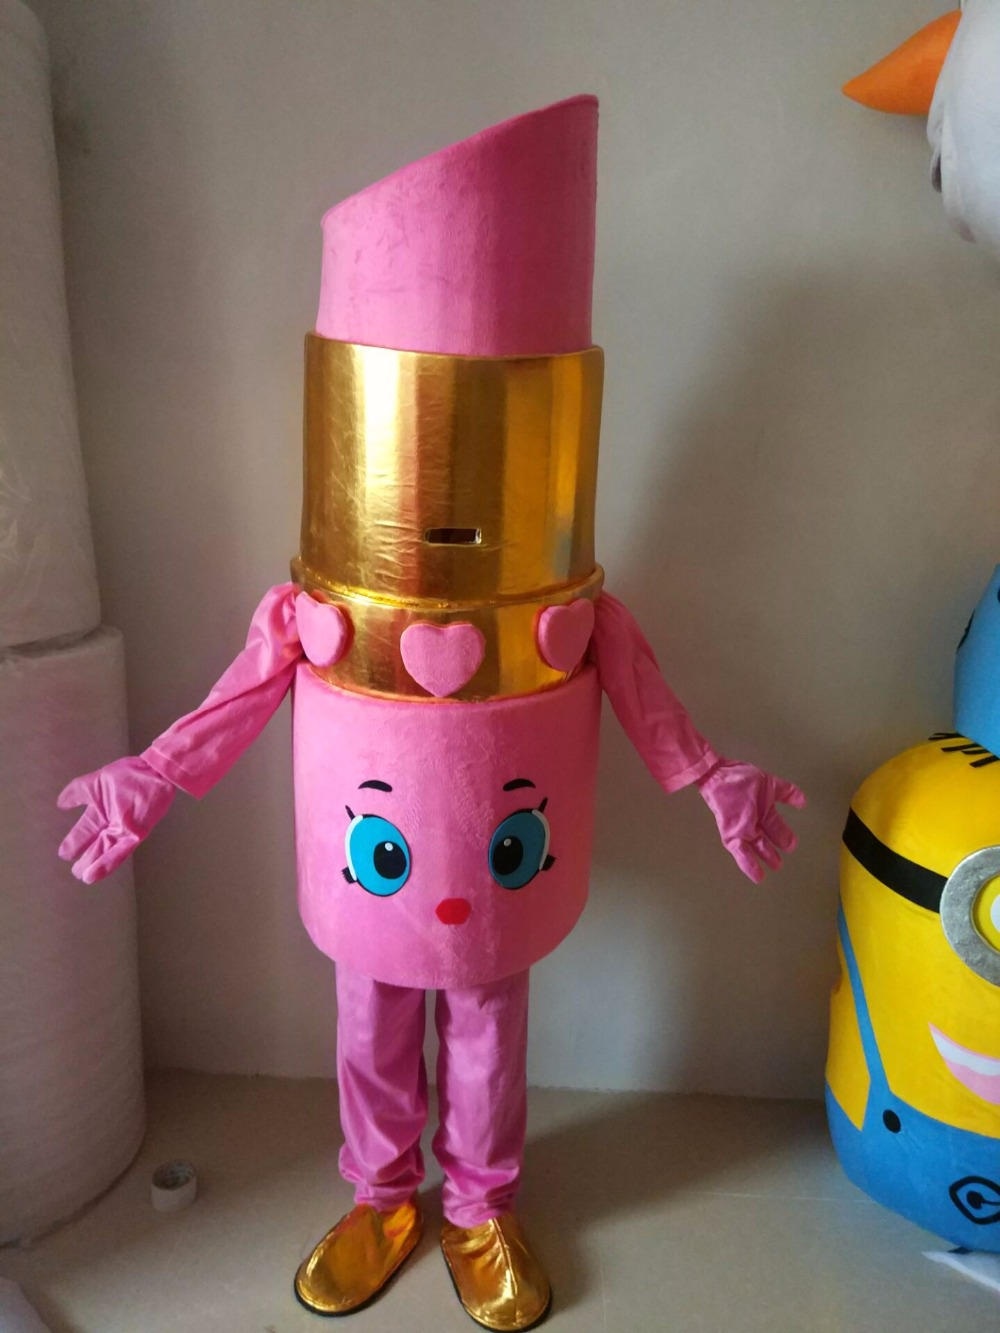 lippy lips Mascot Costume pink lipstick mascot costume from Shopkins for makeup party with for adult Halloween Purim party event